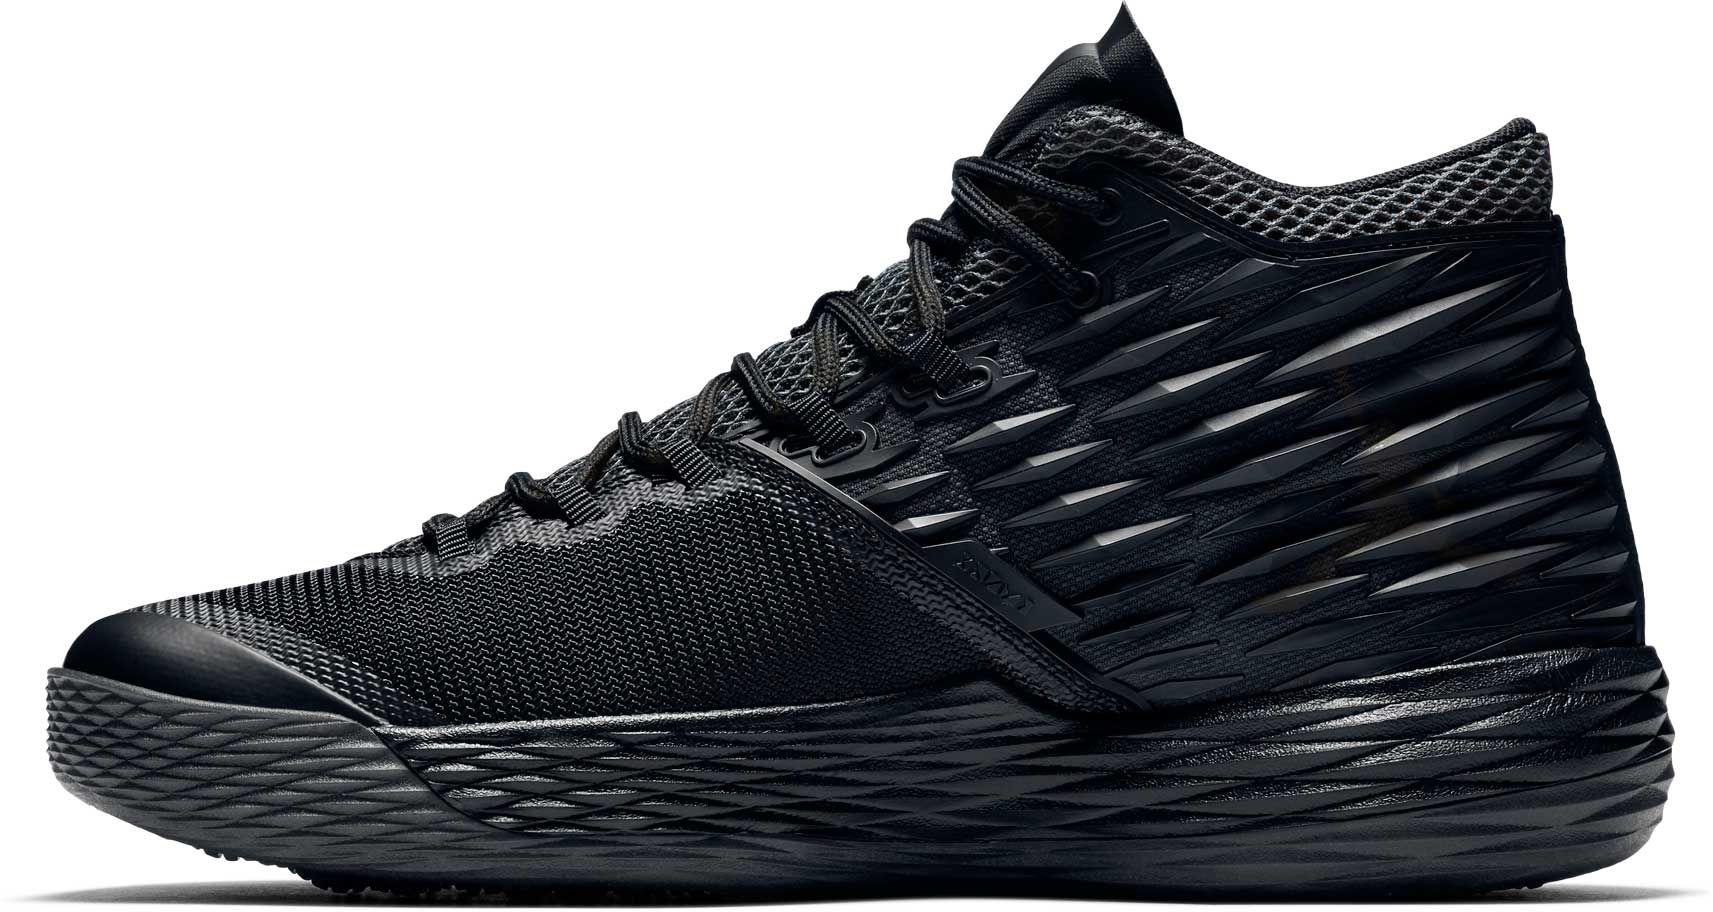 fcb108432 Lyst - Nike Melo M13 Basketball Shoes in Black for Men